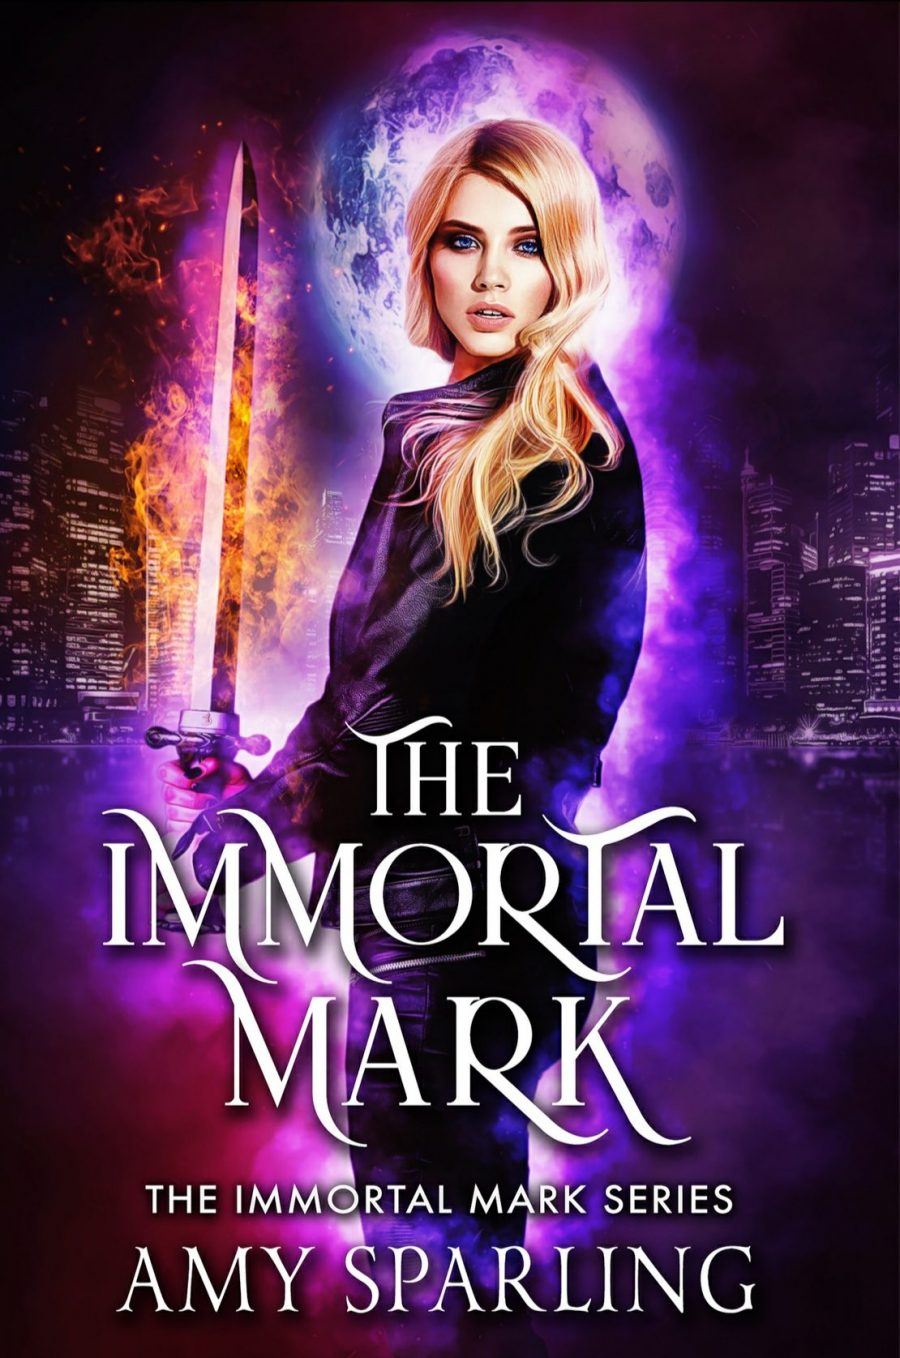 The Immortal Mark by Amy Sparling – A Book Review